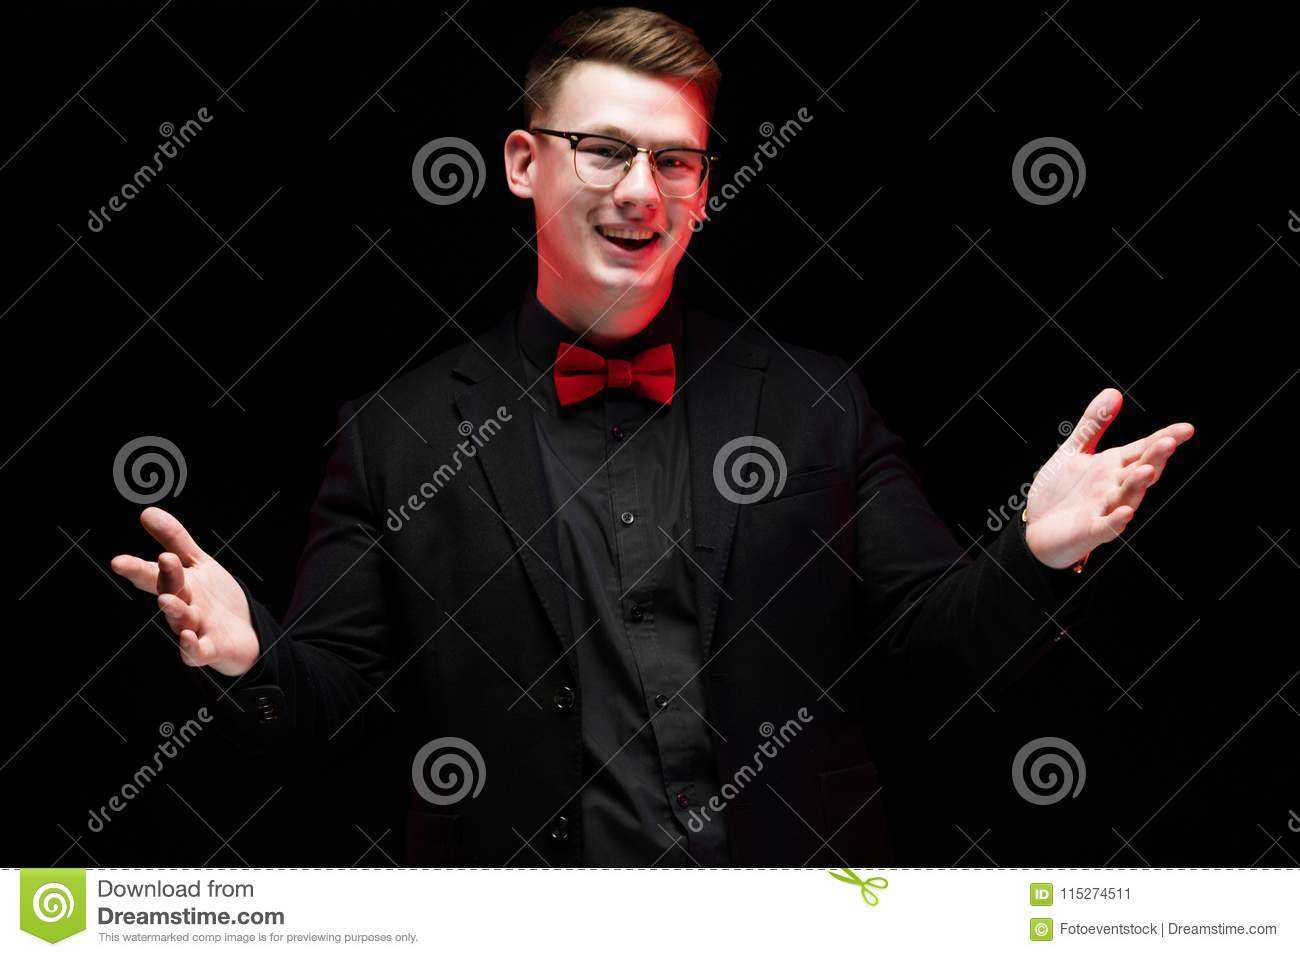 f77d090f2f23 Young caucasian elegant serious smart successful business man in black suit  with bow-tie standing in office looking in camera smiling happy